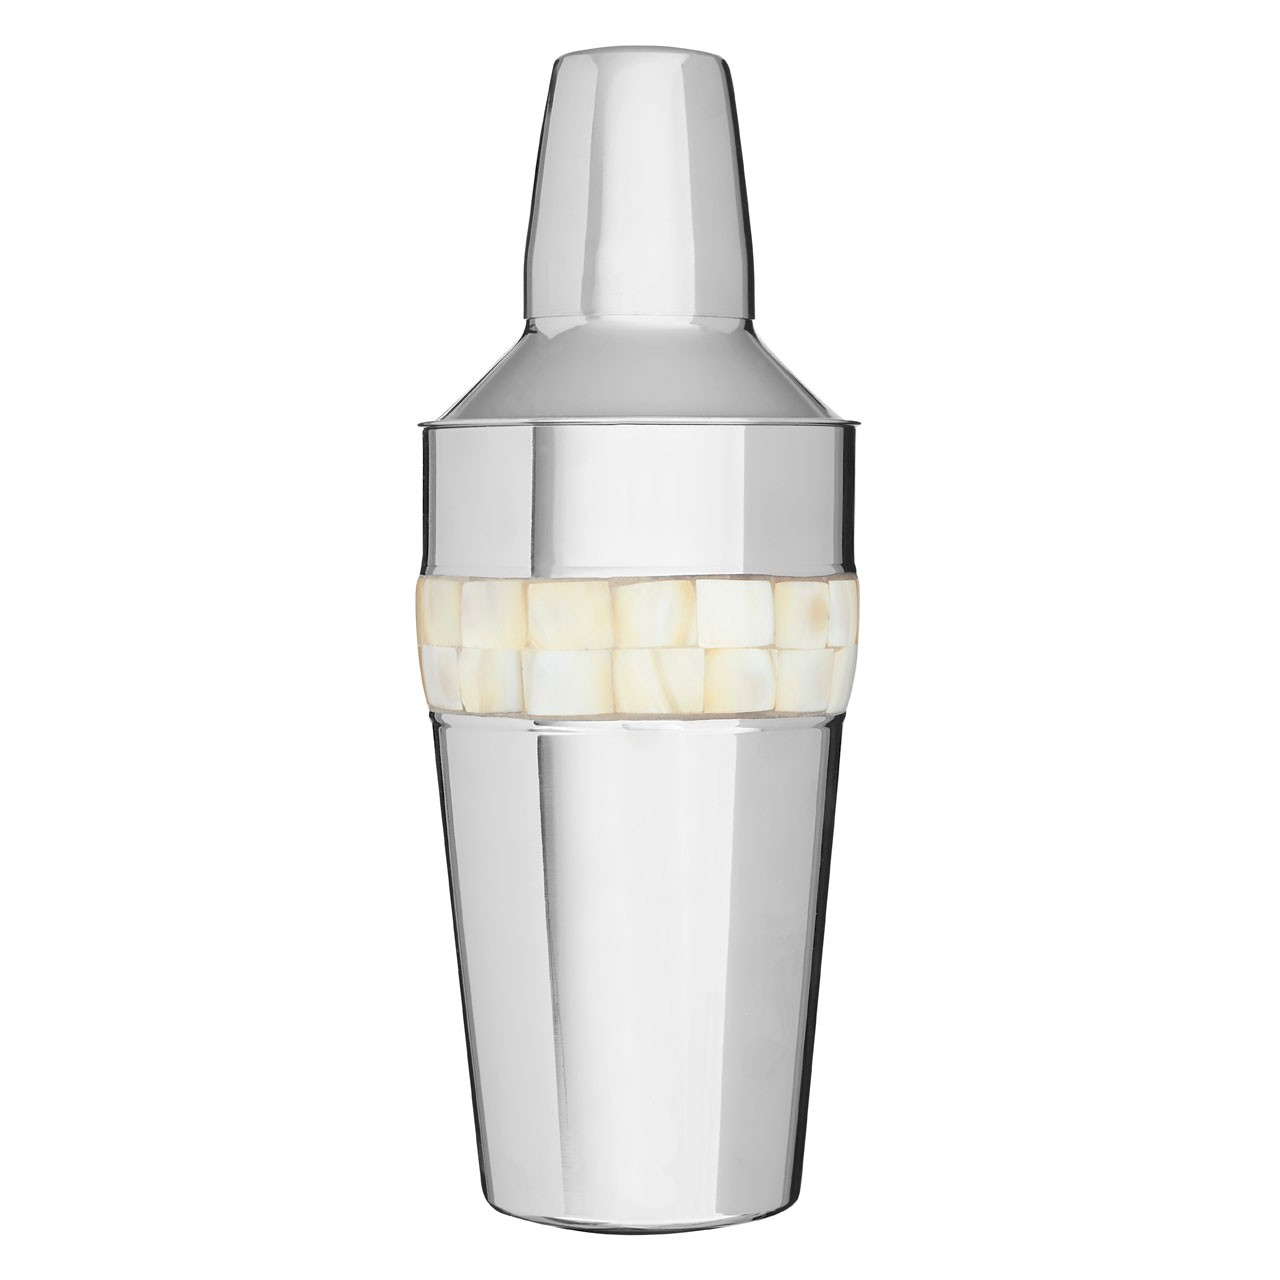 Cocktail Shaker Mother of Pearl Inlay Design Stainless Steel